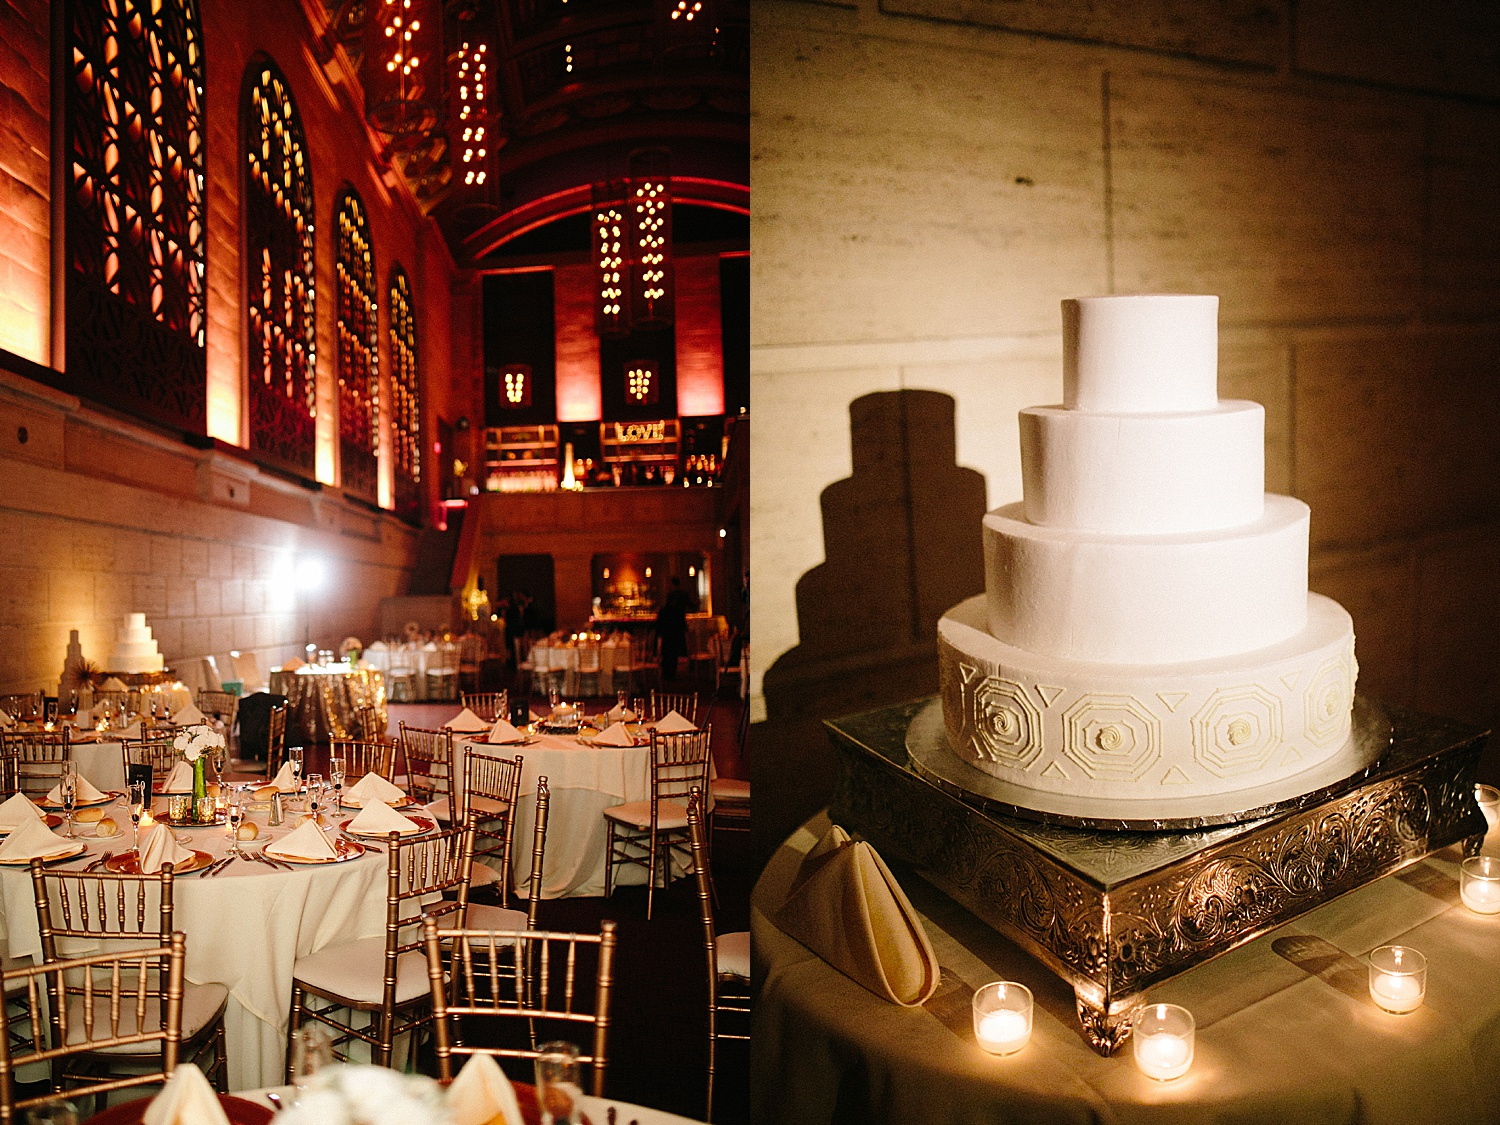 kirstentony_uniontrust_finleycatering_christchurch_philadelphia_wedding_image_0725.jpg